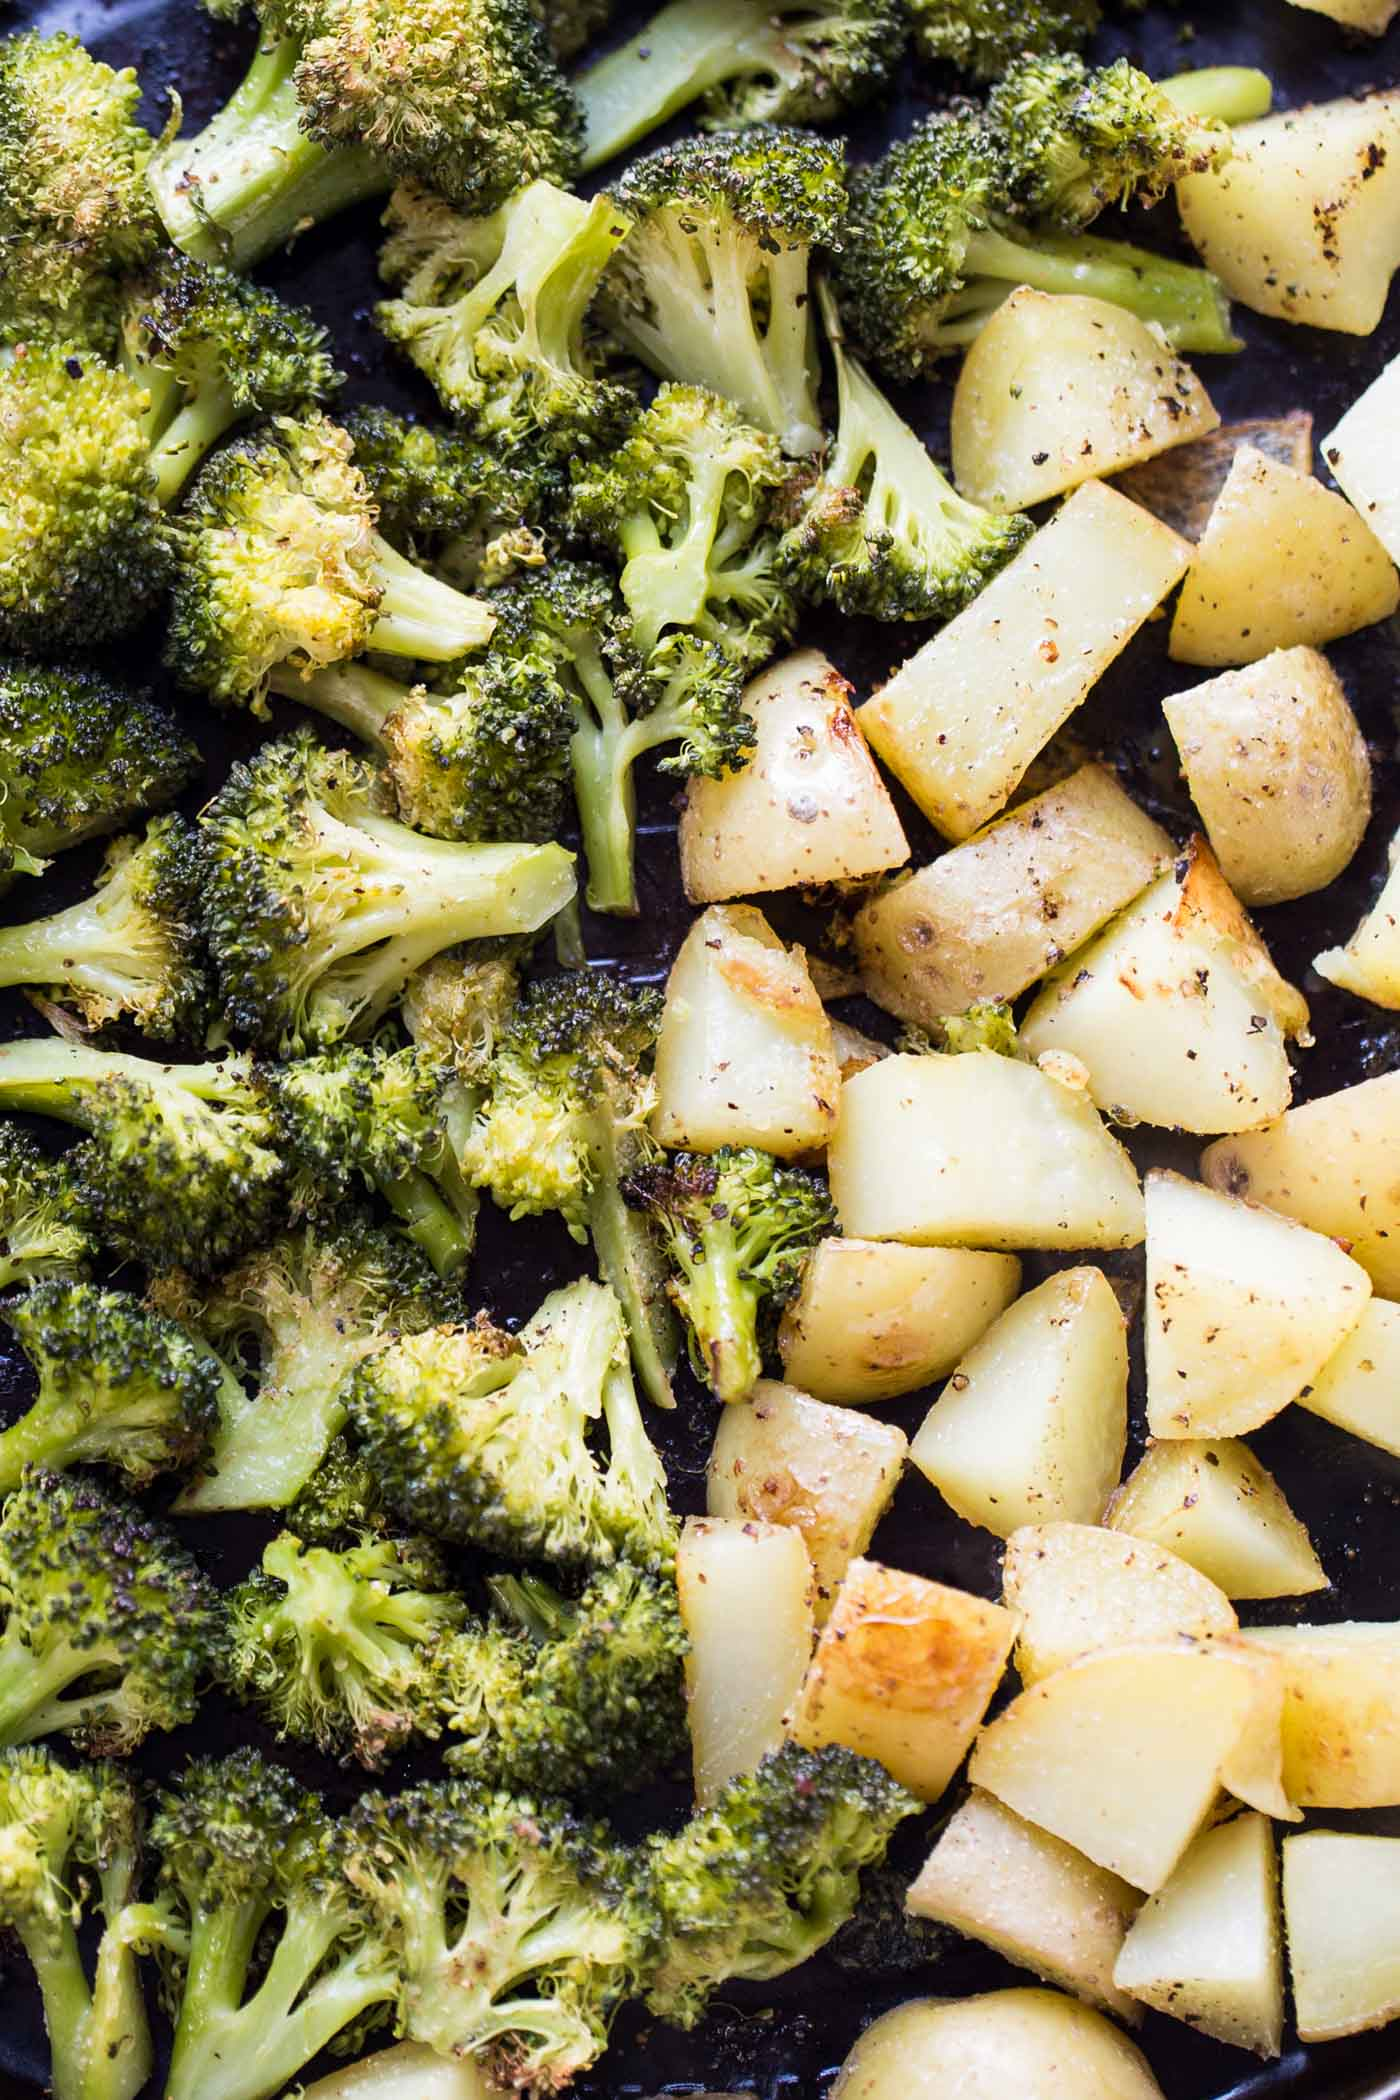 How to make THE BEST DAMN Broccoli Chowder ever! Roasted veggies with nutritional yeast and hummus!